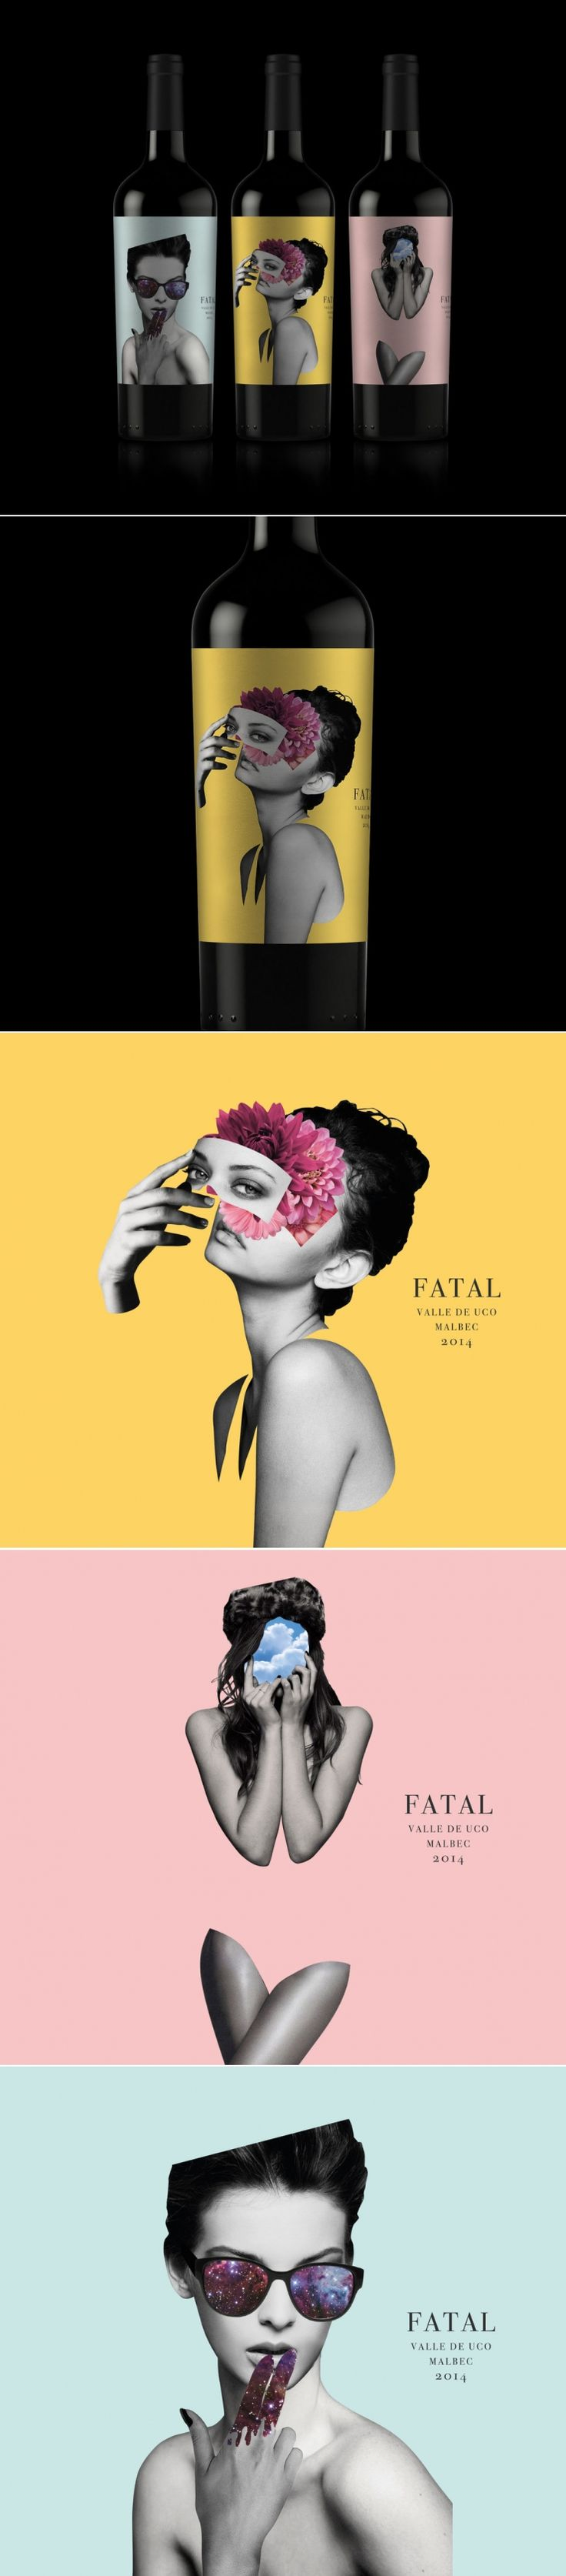 Channel Your Inner Femme Fatale With This Intriguing Wine — The Dieline | Packaging & Branding Design & Innovation News